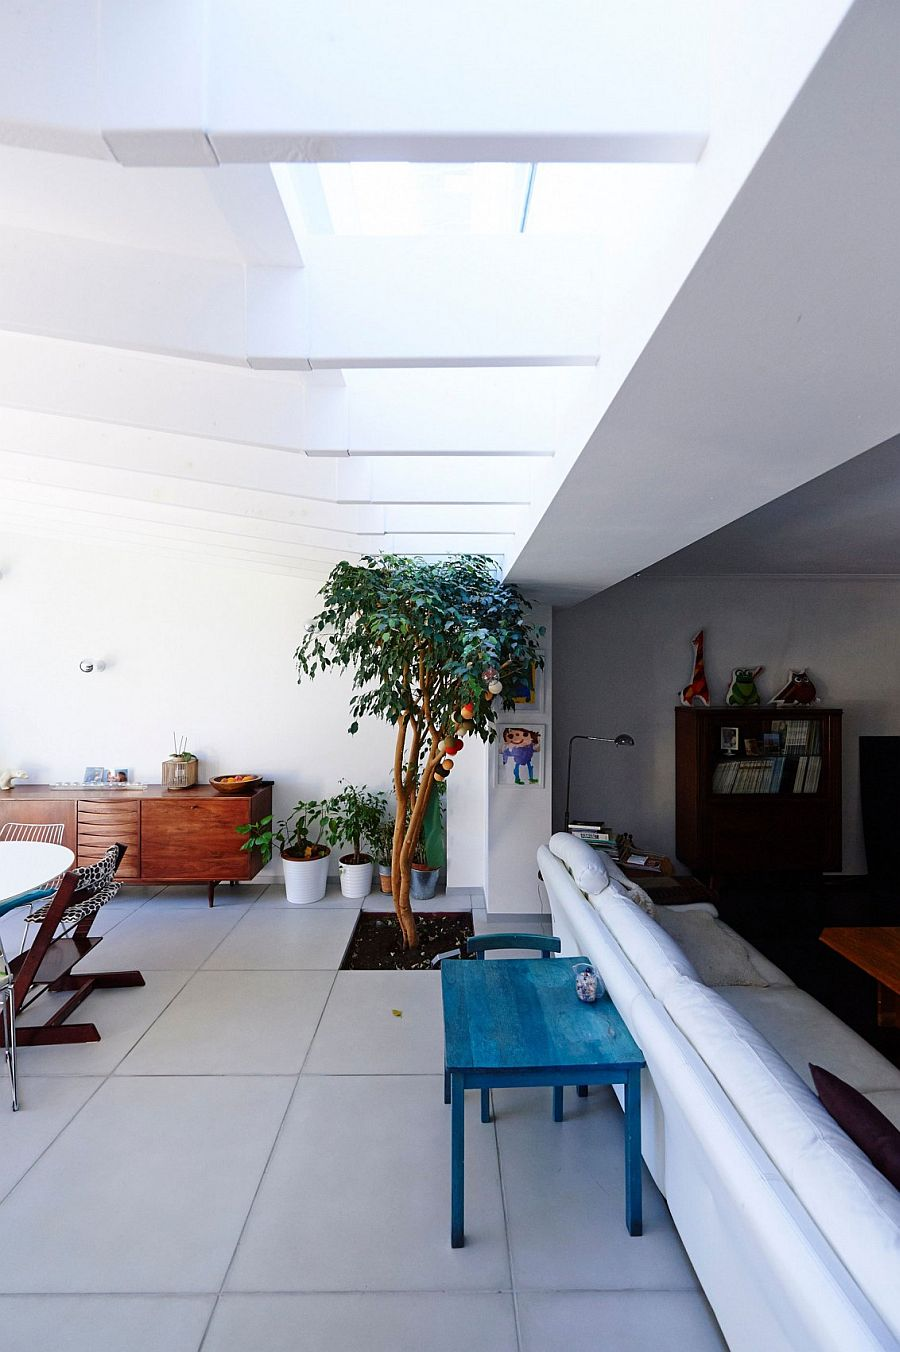 Playful decorations shape the interior of the extension